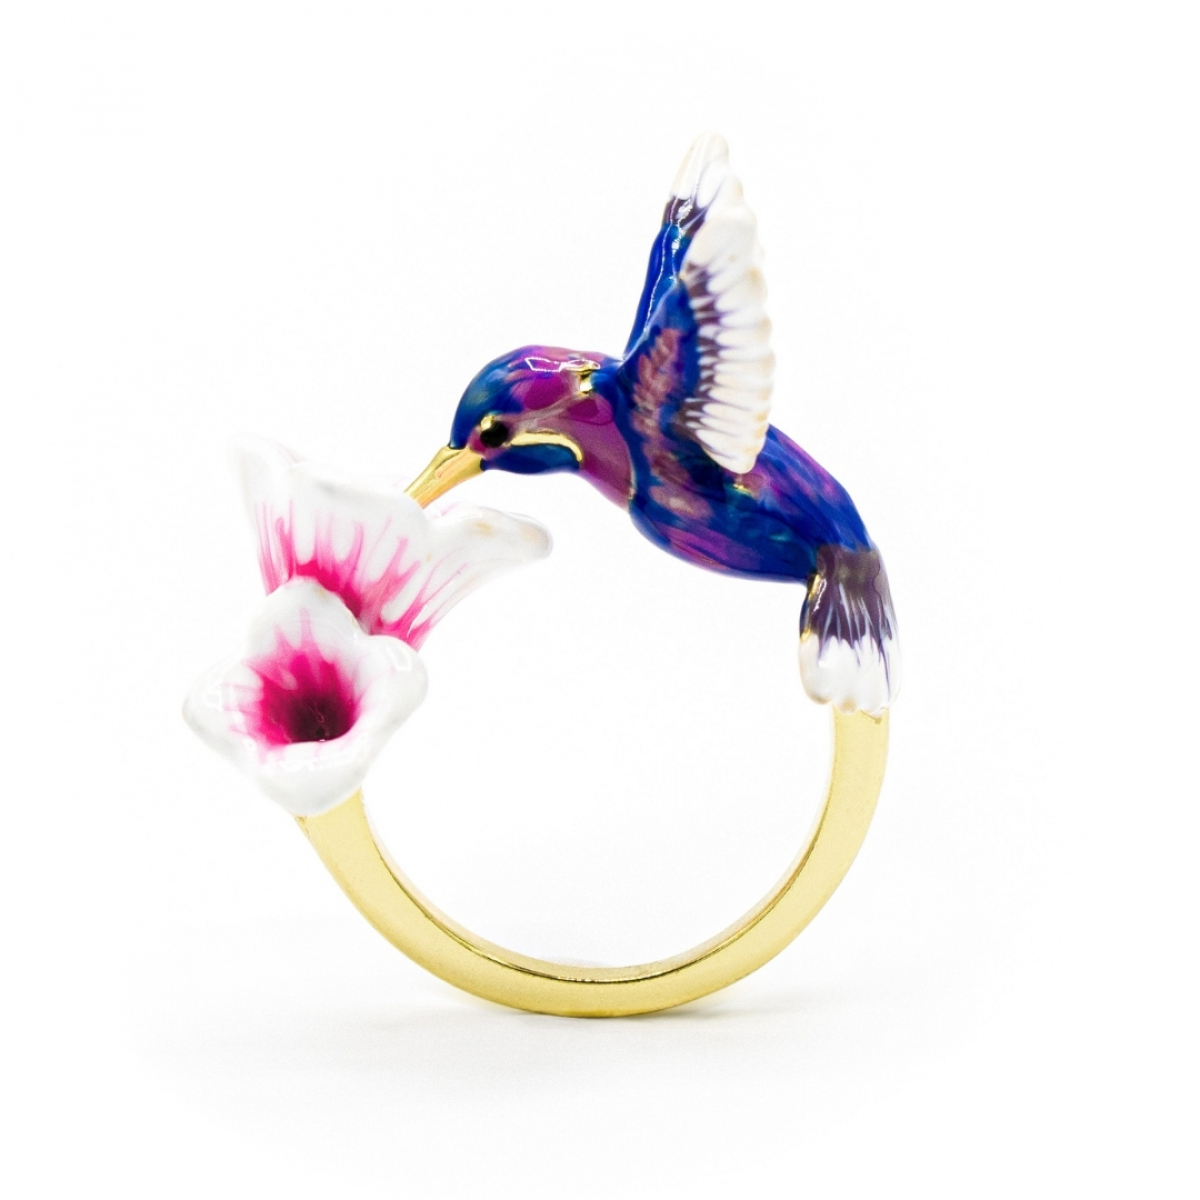 Hummingbird & Flower Open Ring - Blue